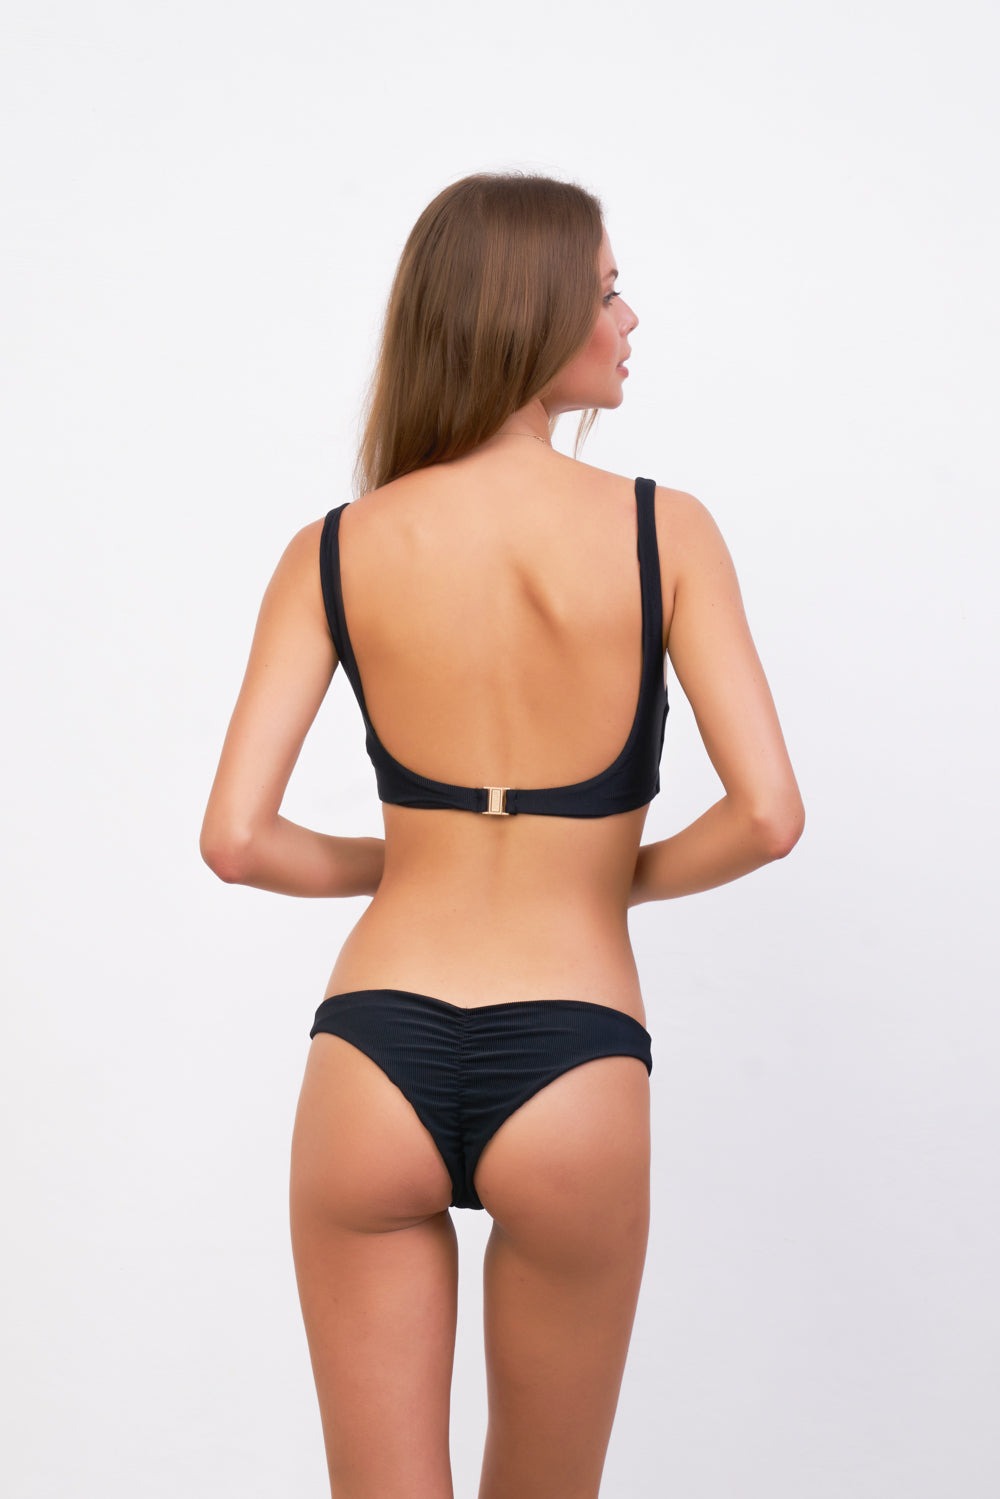 Storm Swimwear - Aruba - Centre Back Ruche Bikini Bottom in Raven Corduroy